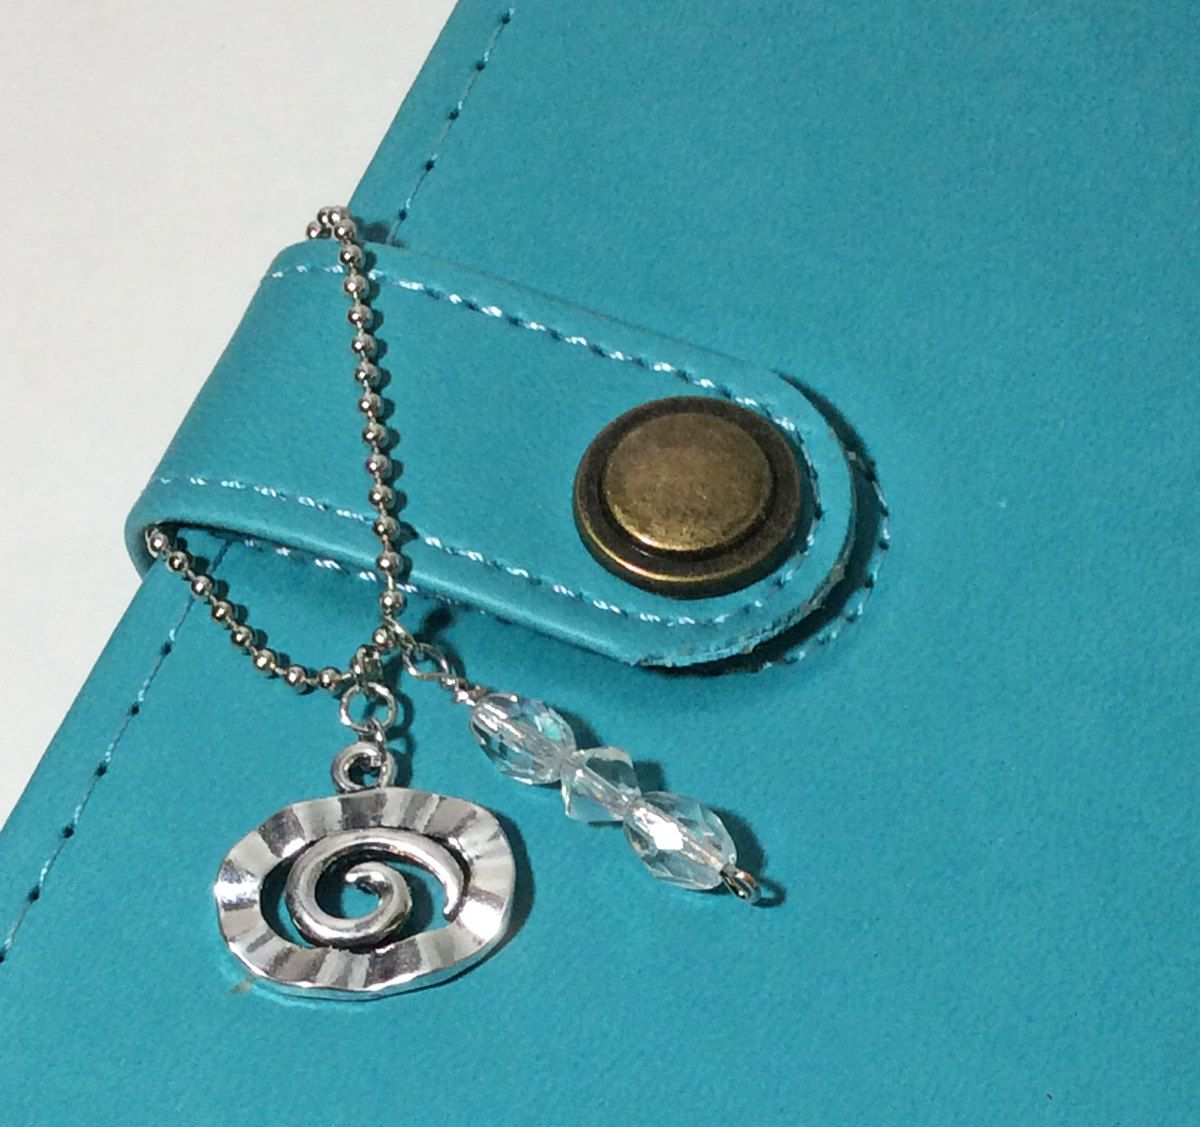 Planner stuff. Planner charm.Planner goodies. Purse charm. Crystal charm. Zipper charms. Ball chain charm. Handbag charm. Spiral notebook. by LaBellaBottega13 on Etsy